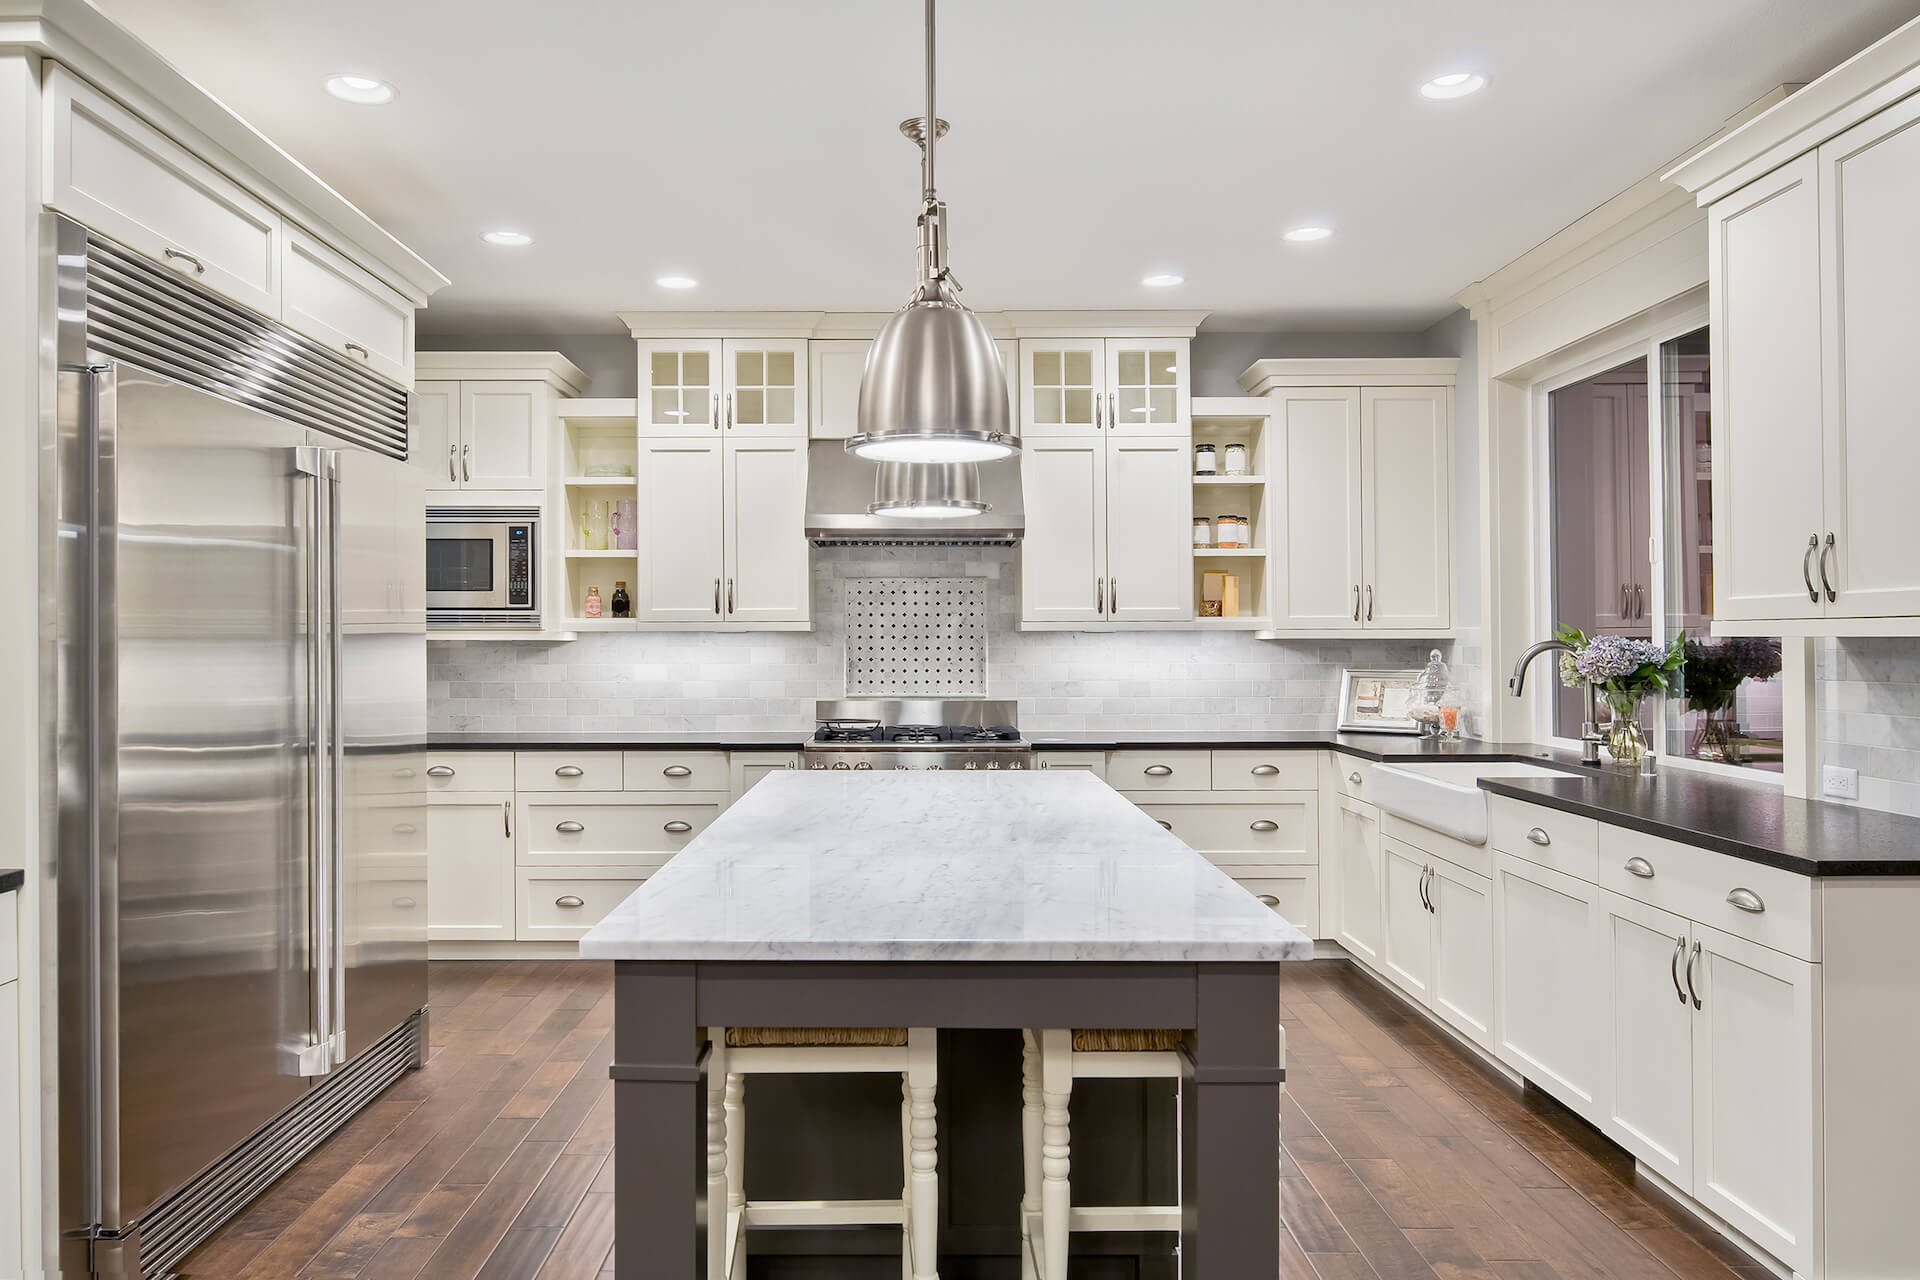 white kitchen cabinets after a cabinet refinishing in cottonwood heights ut